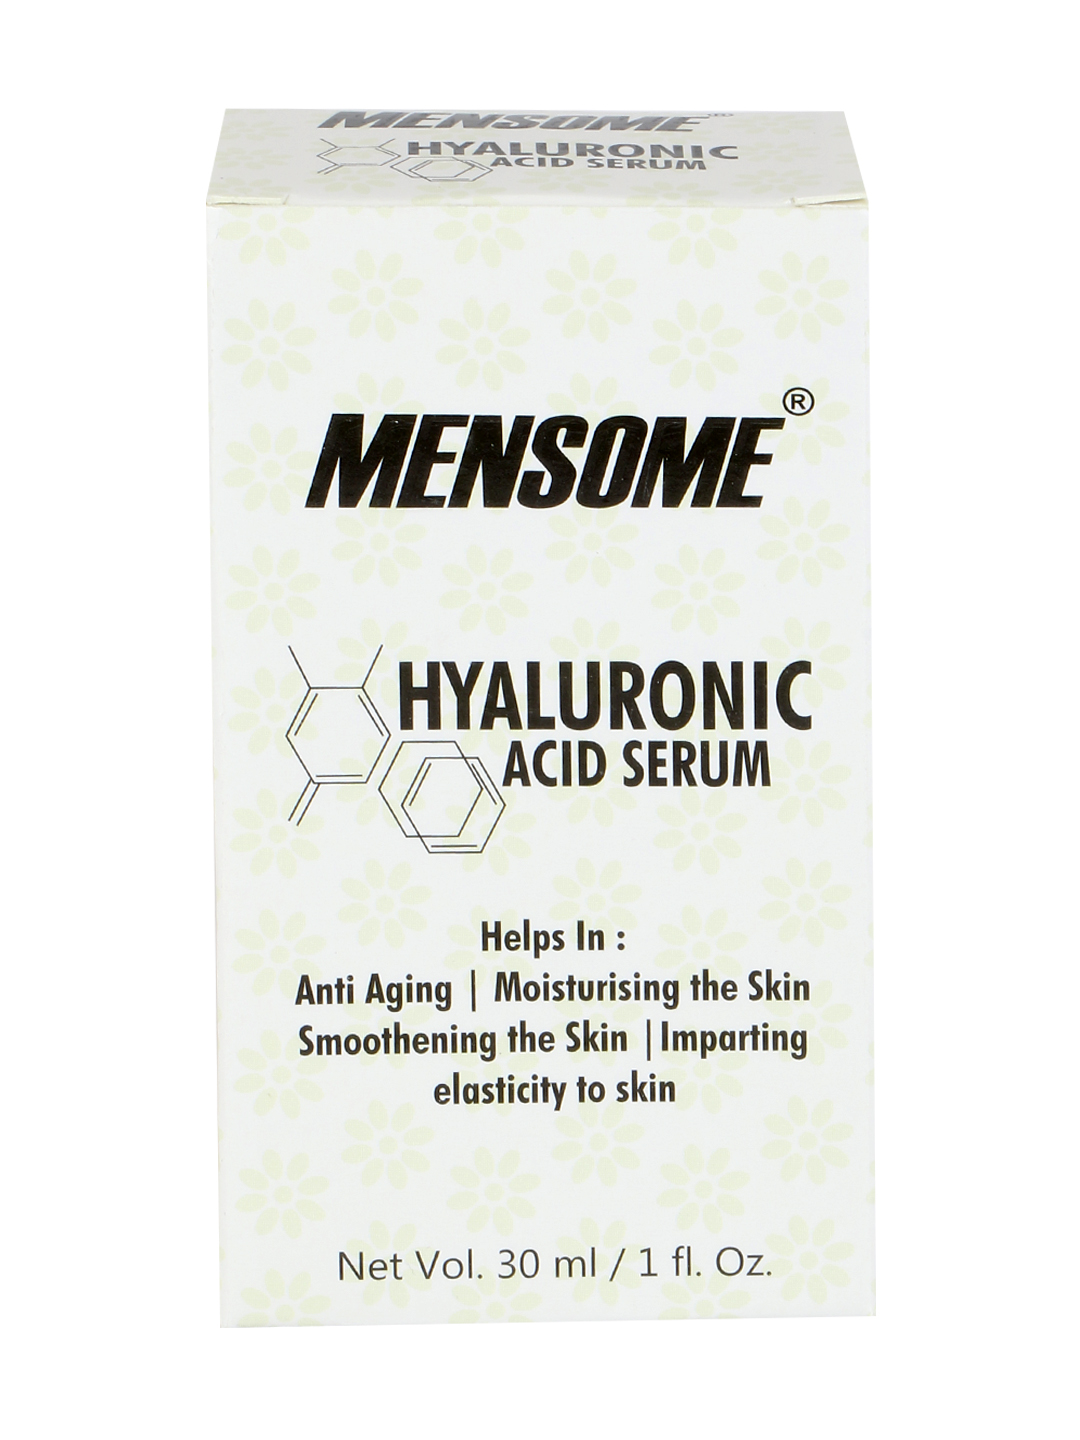 MENSOME Vegan Hyaluronic Acid For Anti Ageing, Elasticity To Skin, Moisture To Skin And Skin Smoothing Serum In 30 Ml